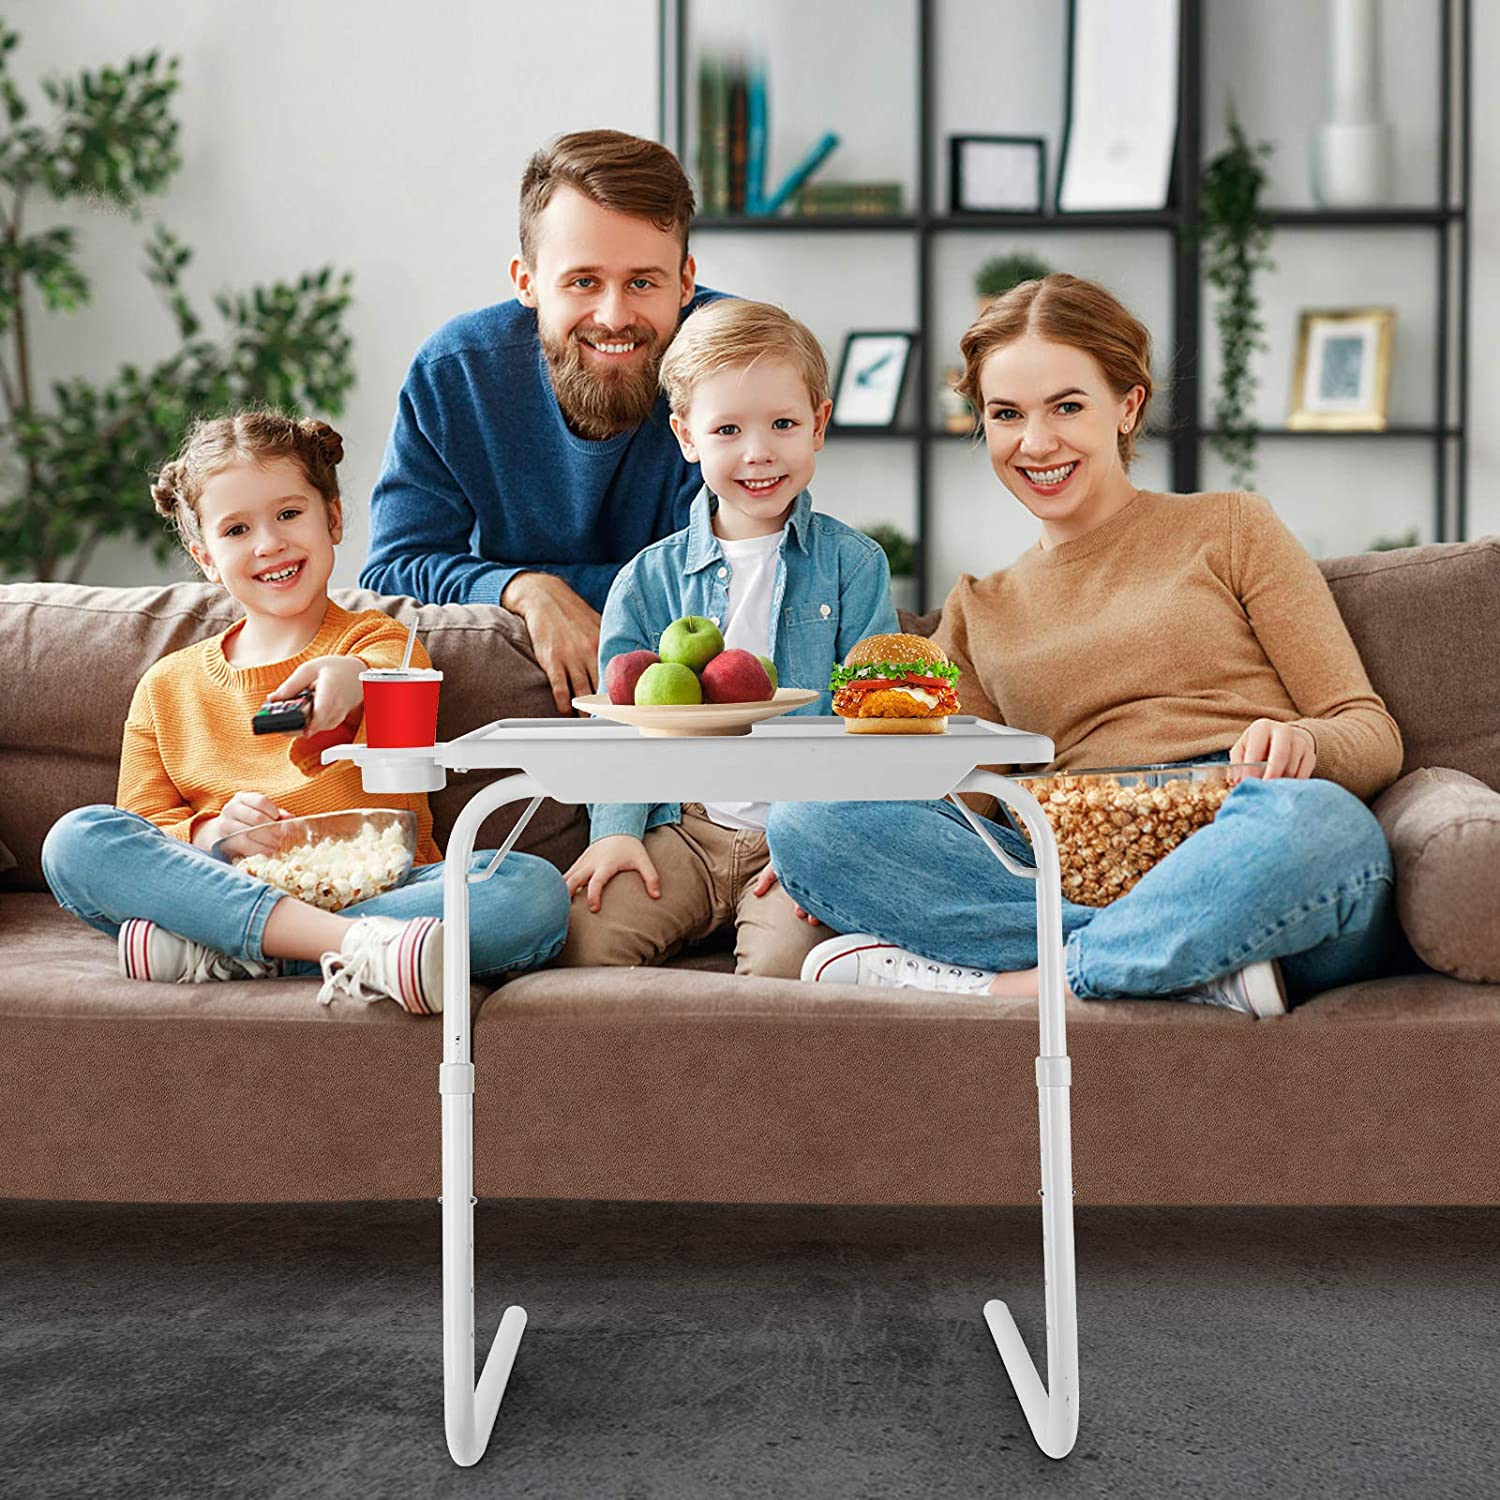 Black Comfortable Couch Desk Cup Holder Built-in with 6 Height /& 3 Tilt Angle Adjustable Mejerca TV Tray Table Folding TV Dinner Tray on Bed /& Sofa